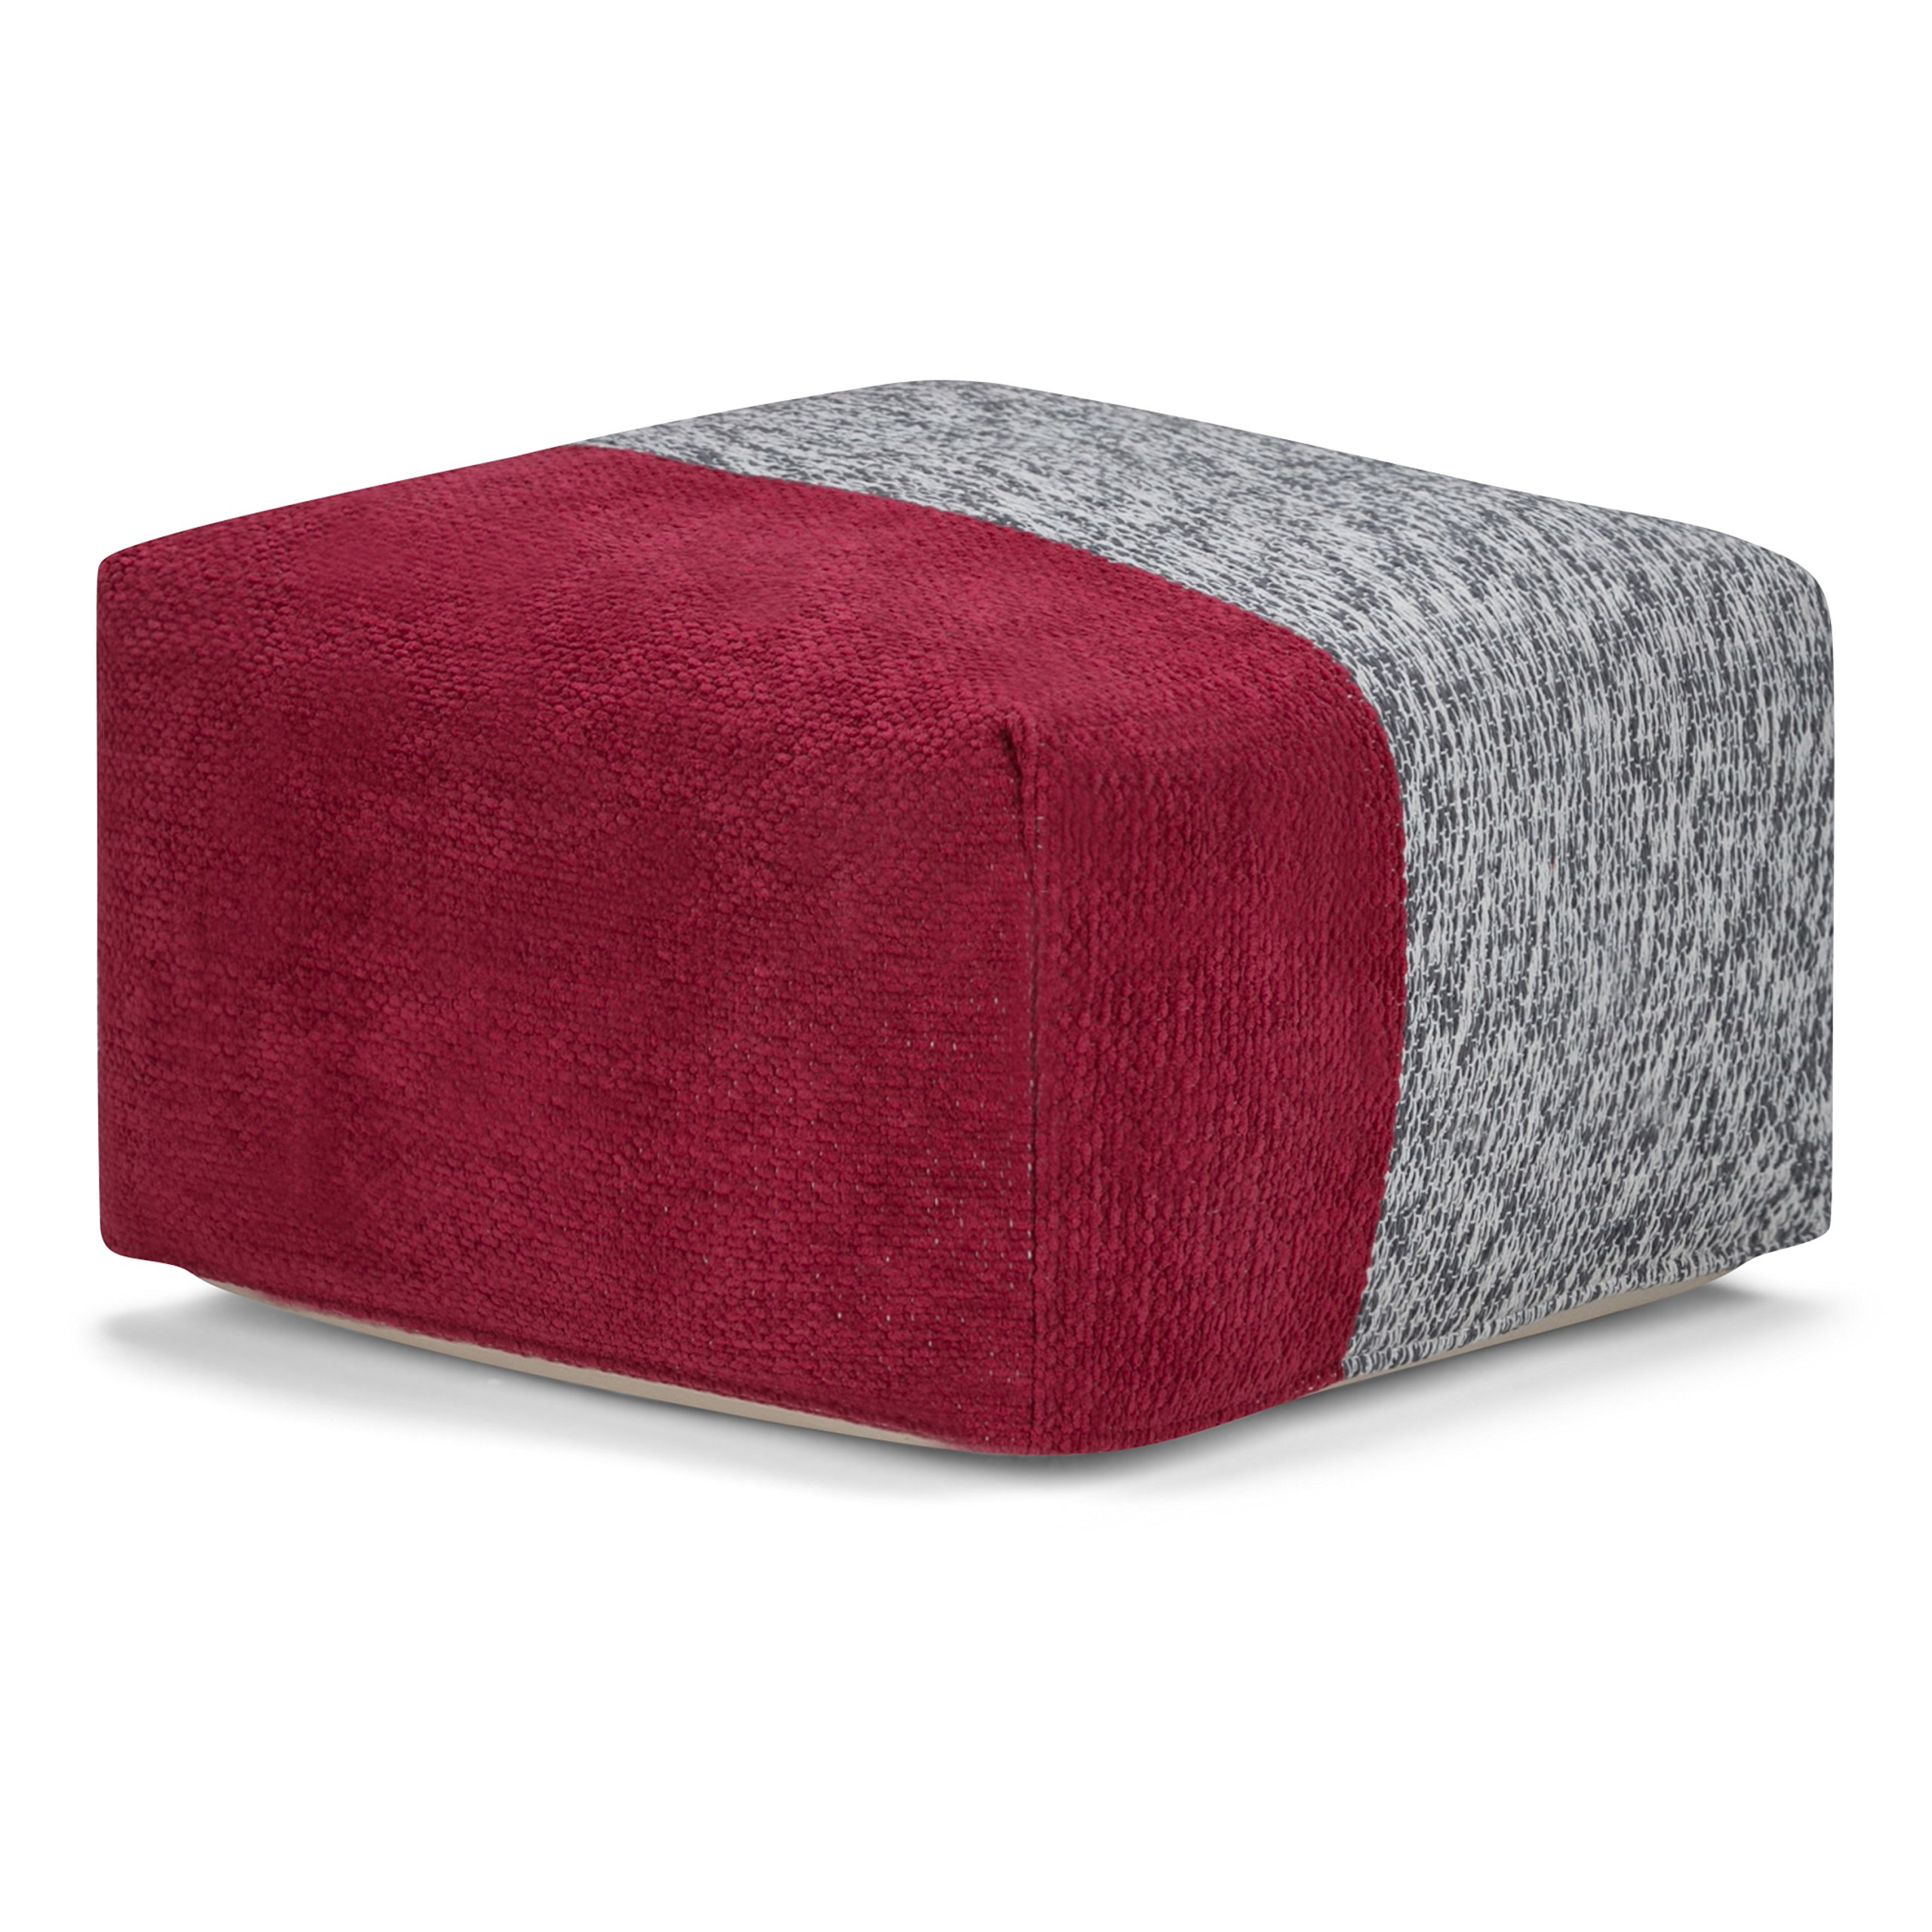 Simpli Home Emmett Square Pouf, Red and Grey